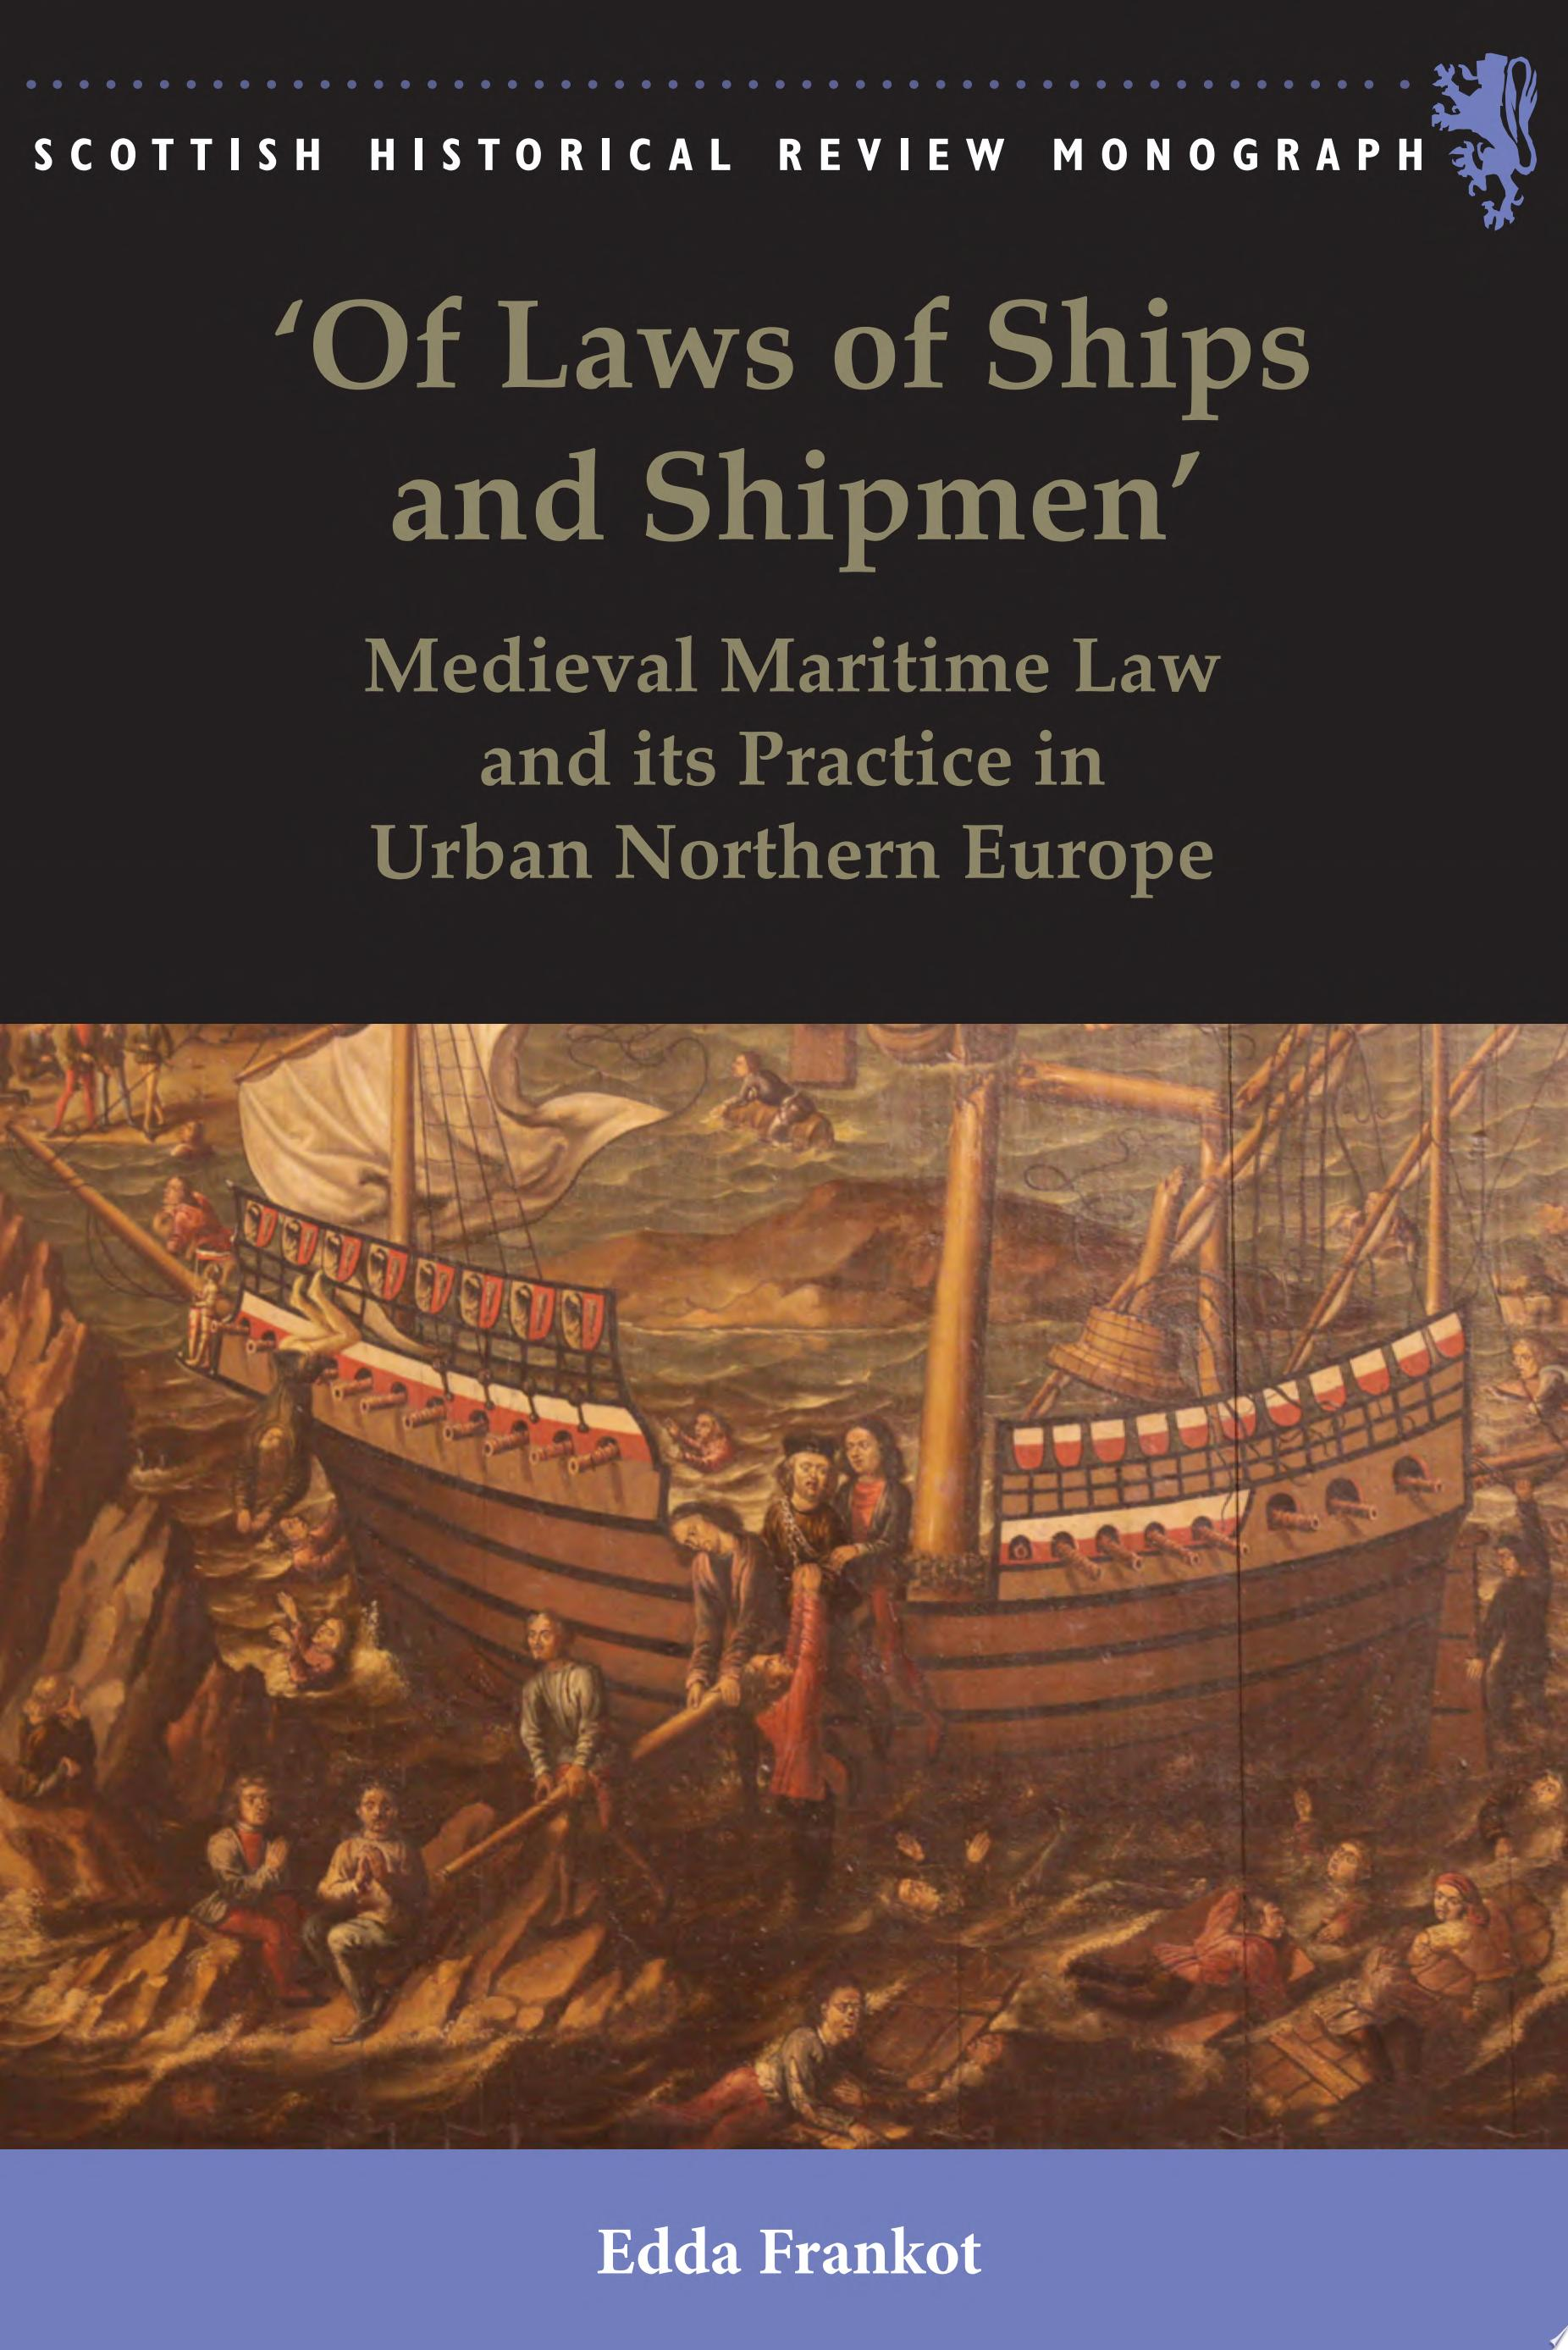 Of Laws of Ships and Shipmen   Medieval Maritime Law and its Practice in Urban Northern Europe